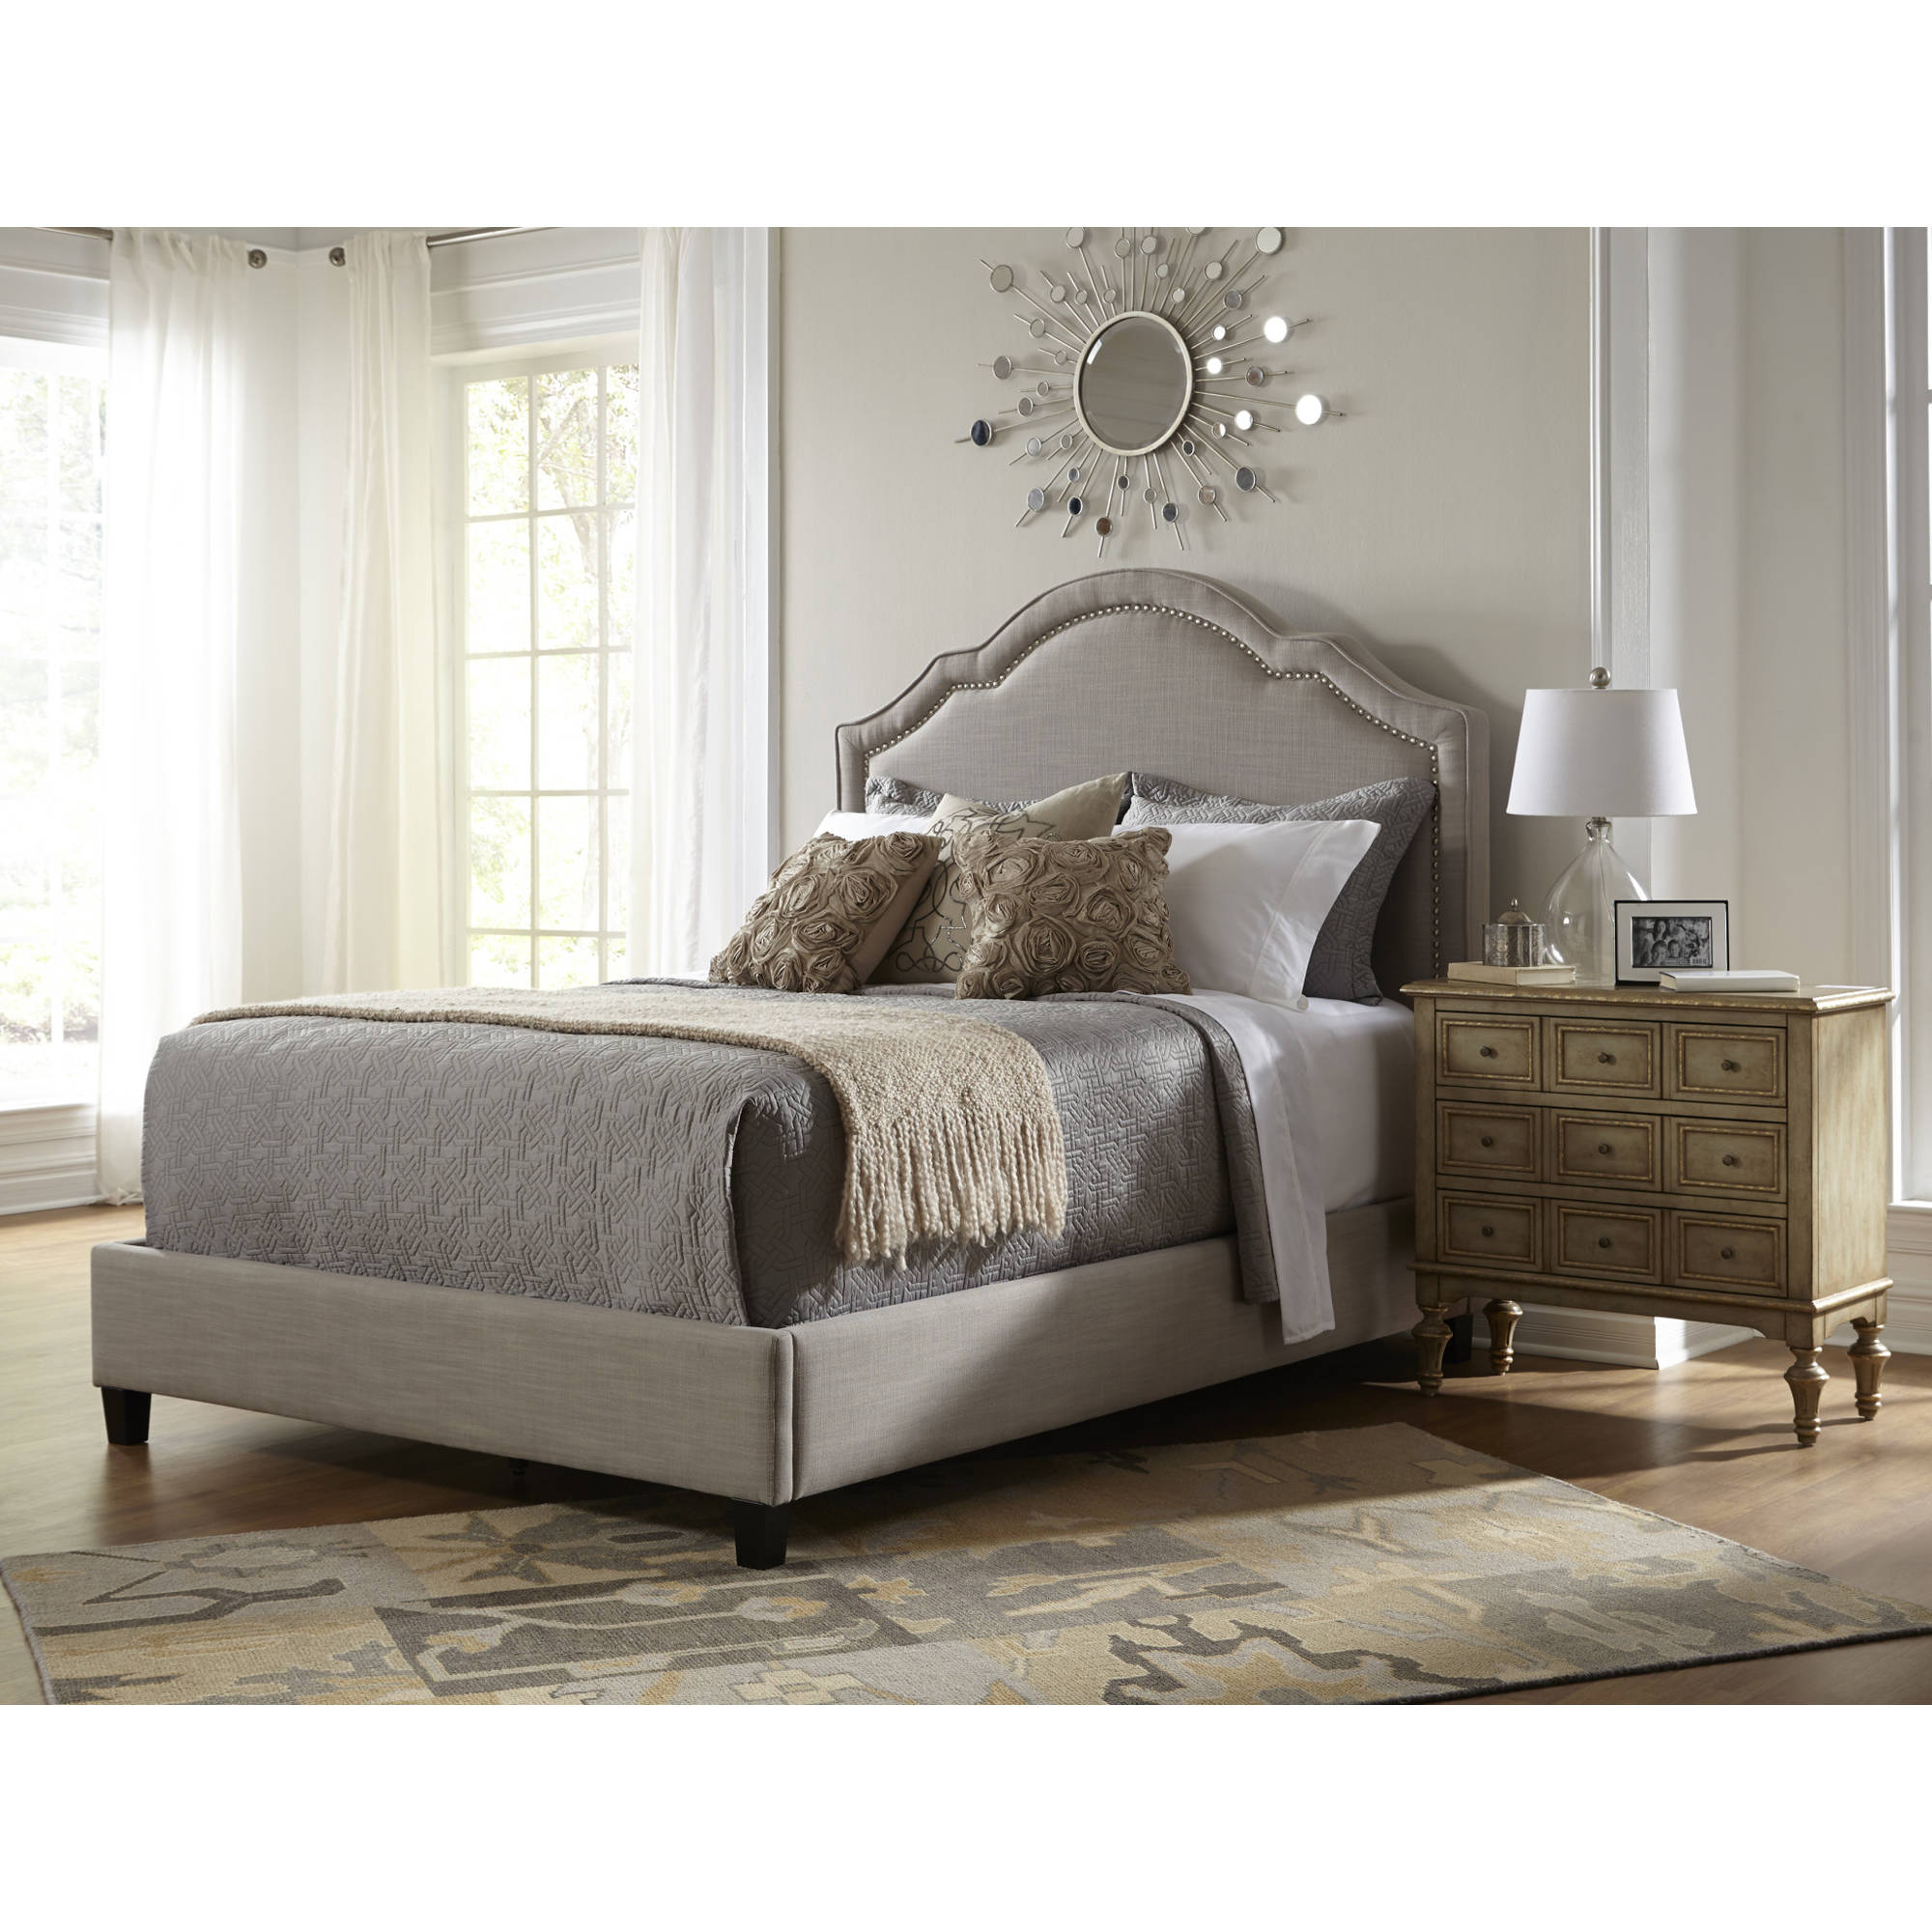 Pulaski Accentircs Home Shaped Nailhead Upholstered Headboard Only for Queen Size Bed